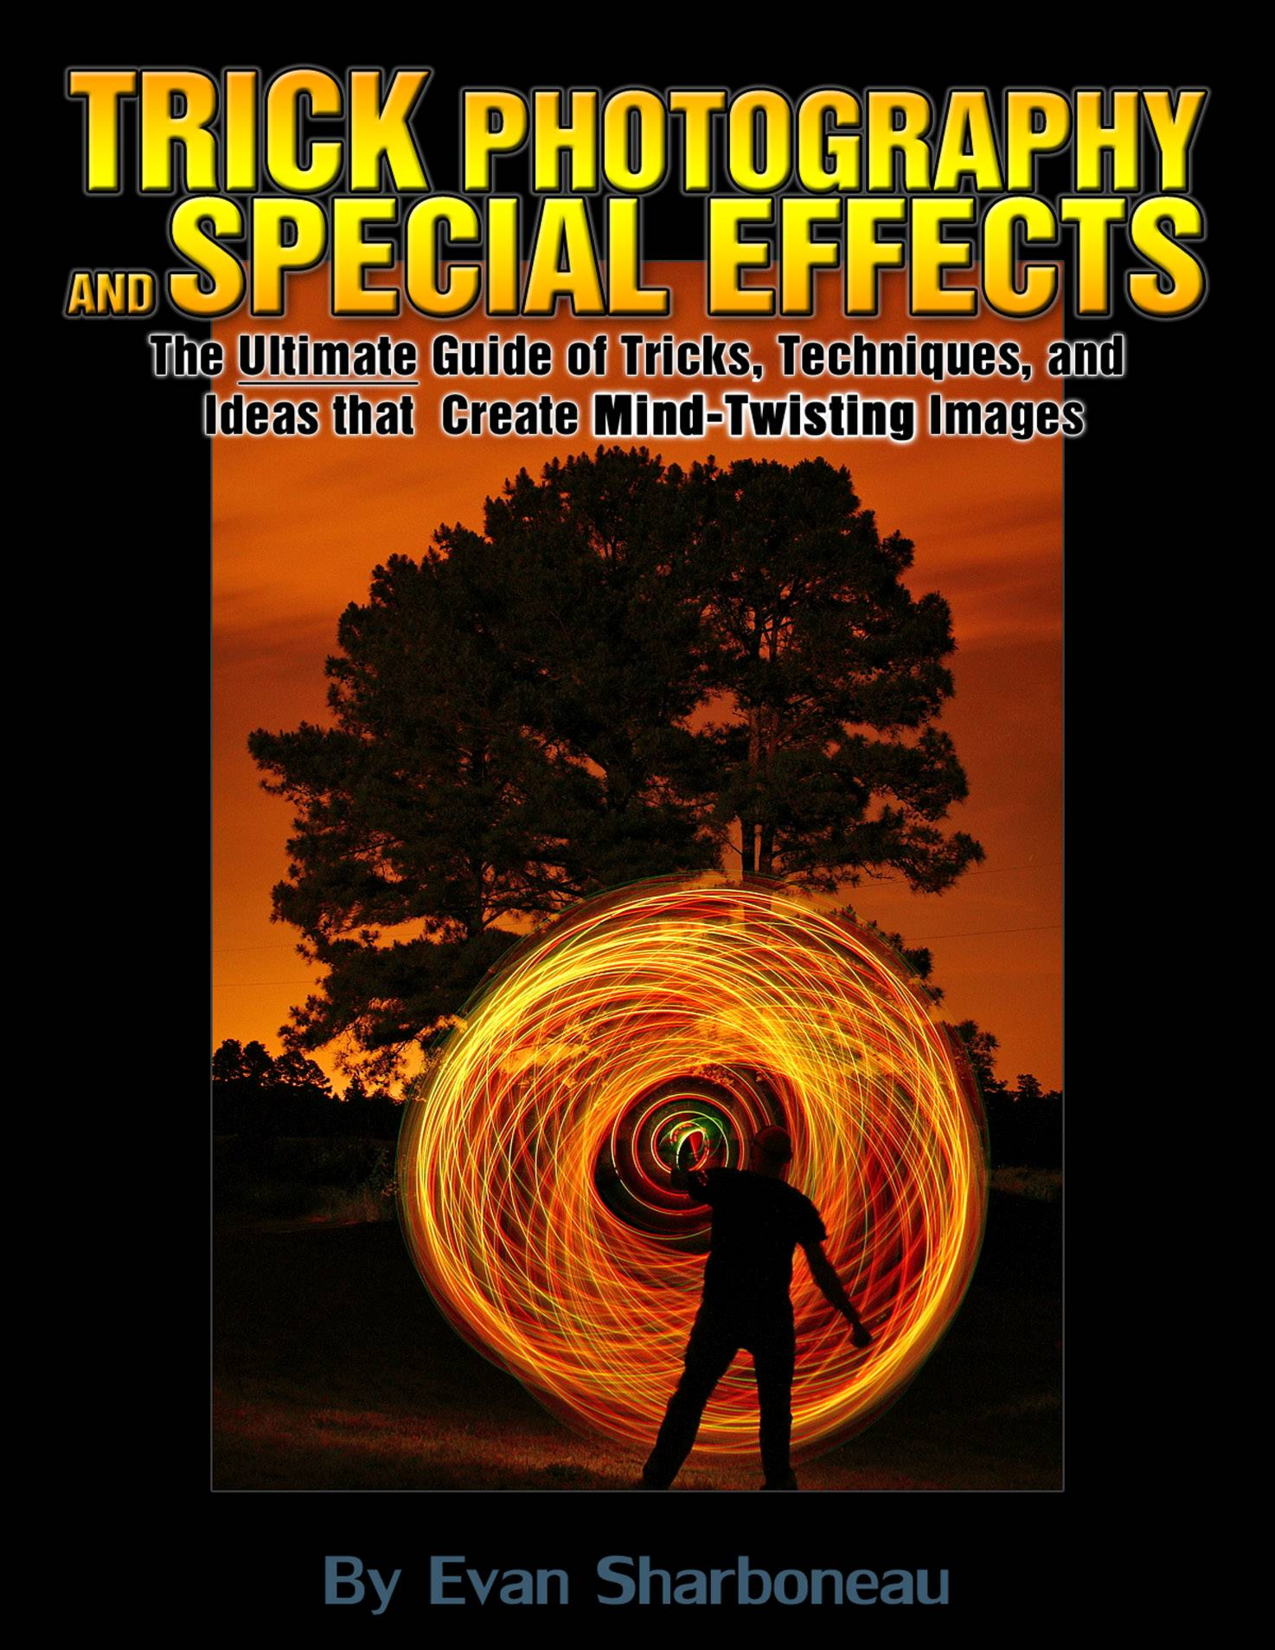 download trick photography and special effects ebook ...